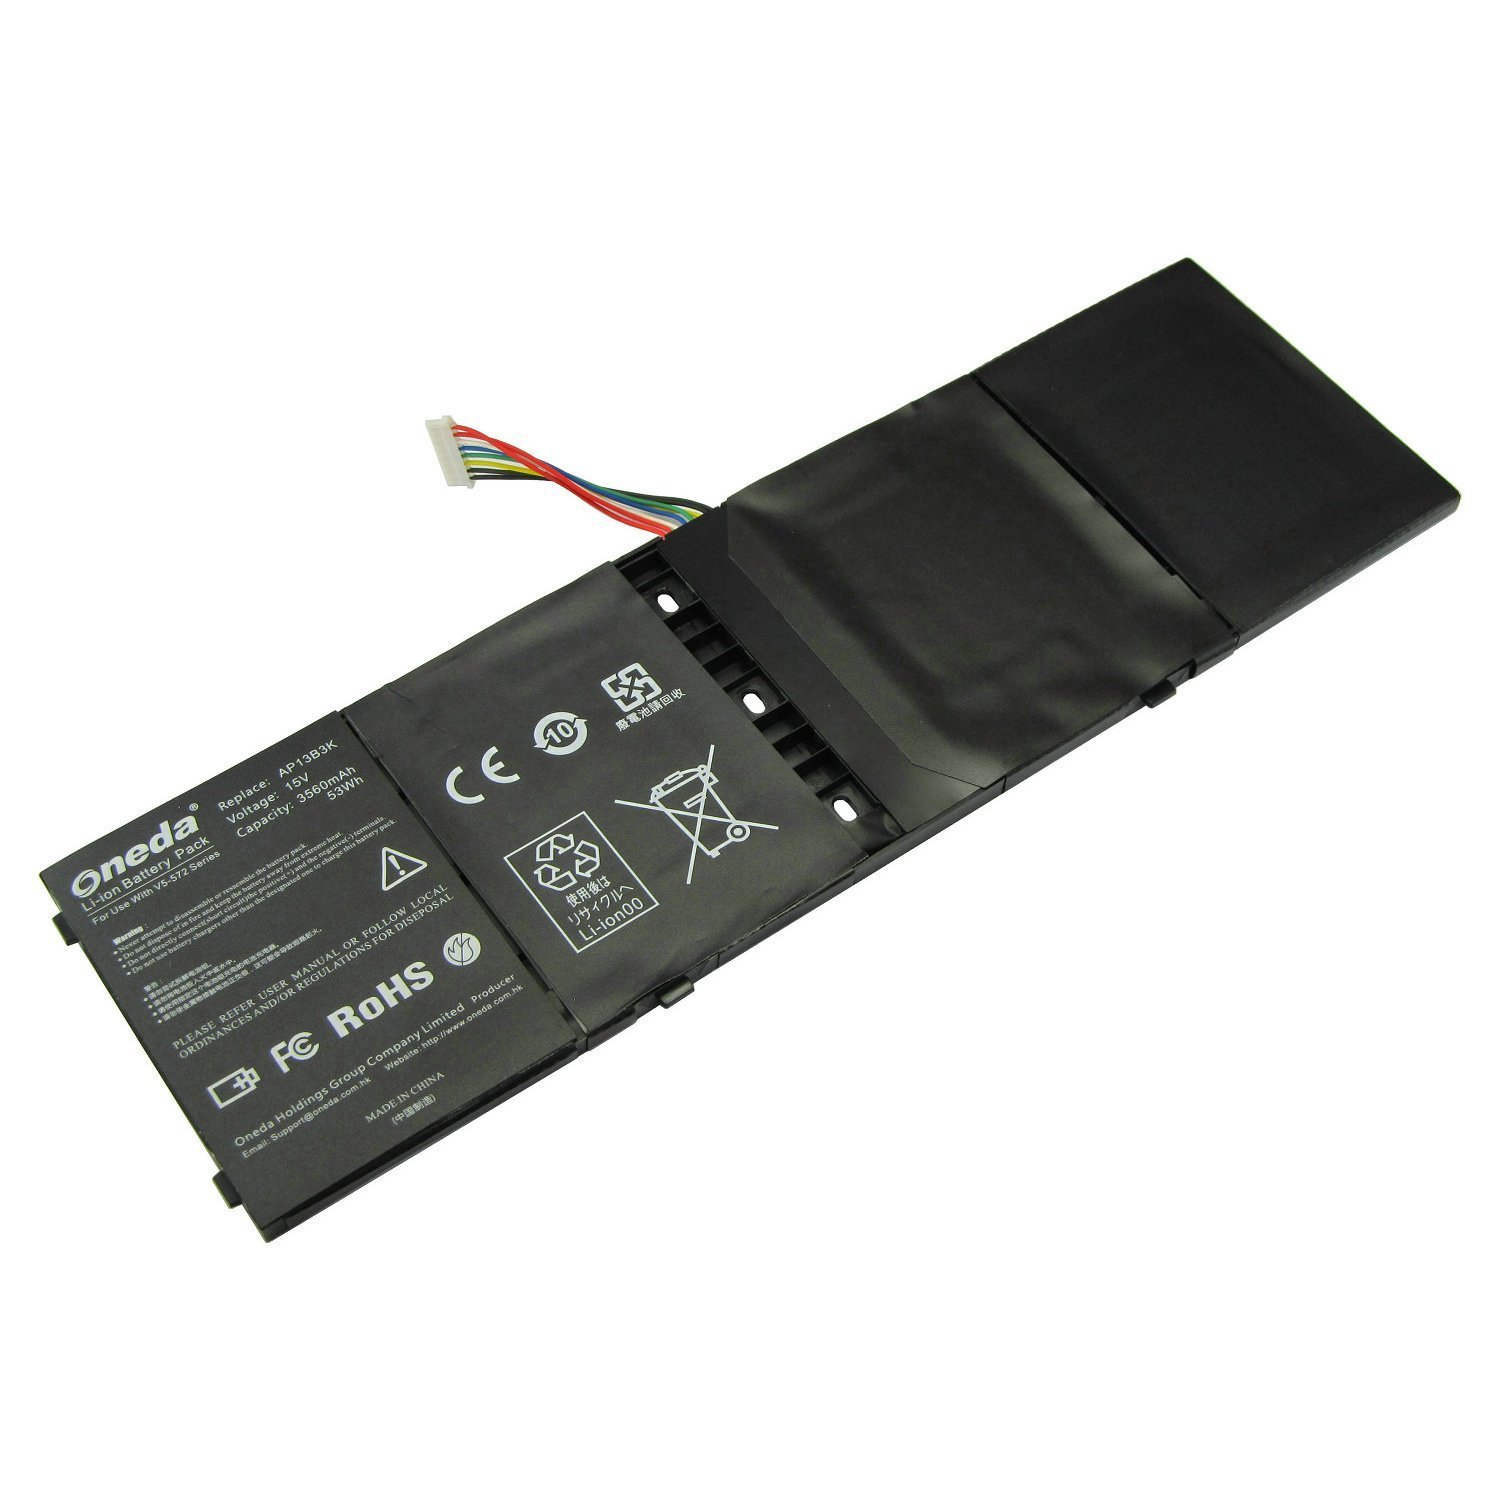 Oneda New Laptop Battery for Acer Aspire M5-583P V5-572P V5-572G ZQK ZQI ZQY ZRl ZRQ Series; Fits P/N: AP13B3K AL13B3K AP13B8K KT.00403.015 KT00403015 Replacement batteries Pack [4-cell /3560mAh/53Wh]